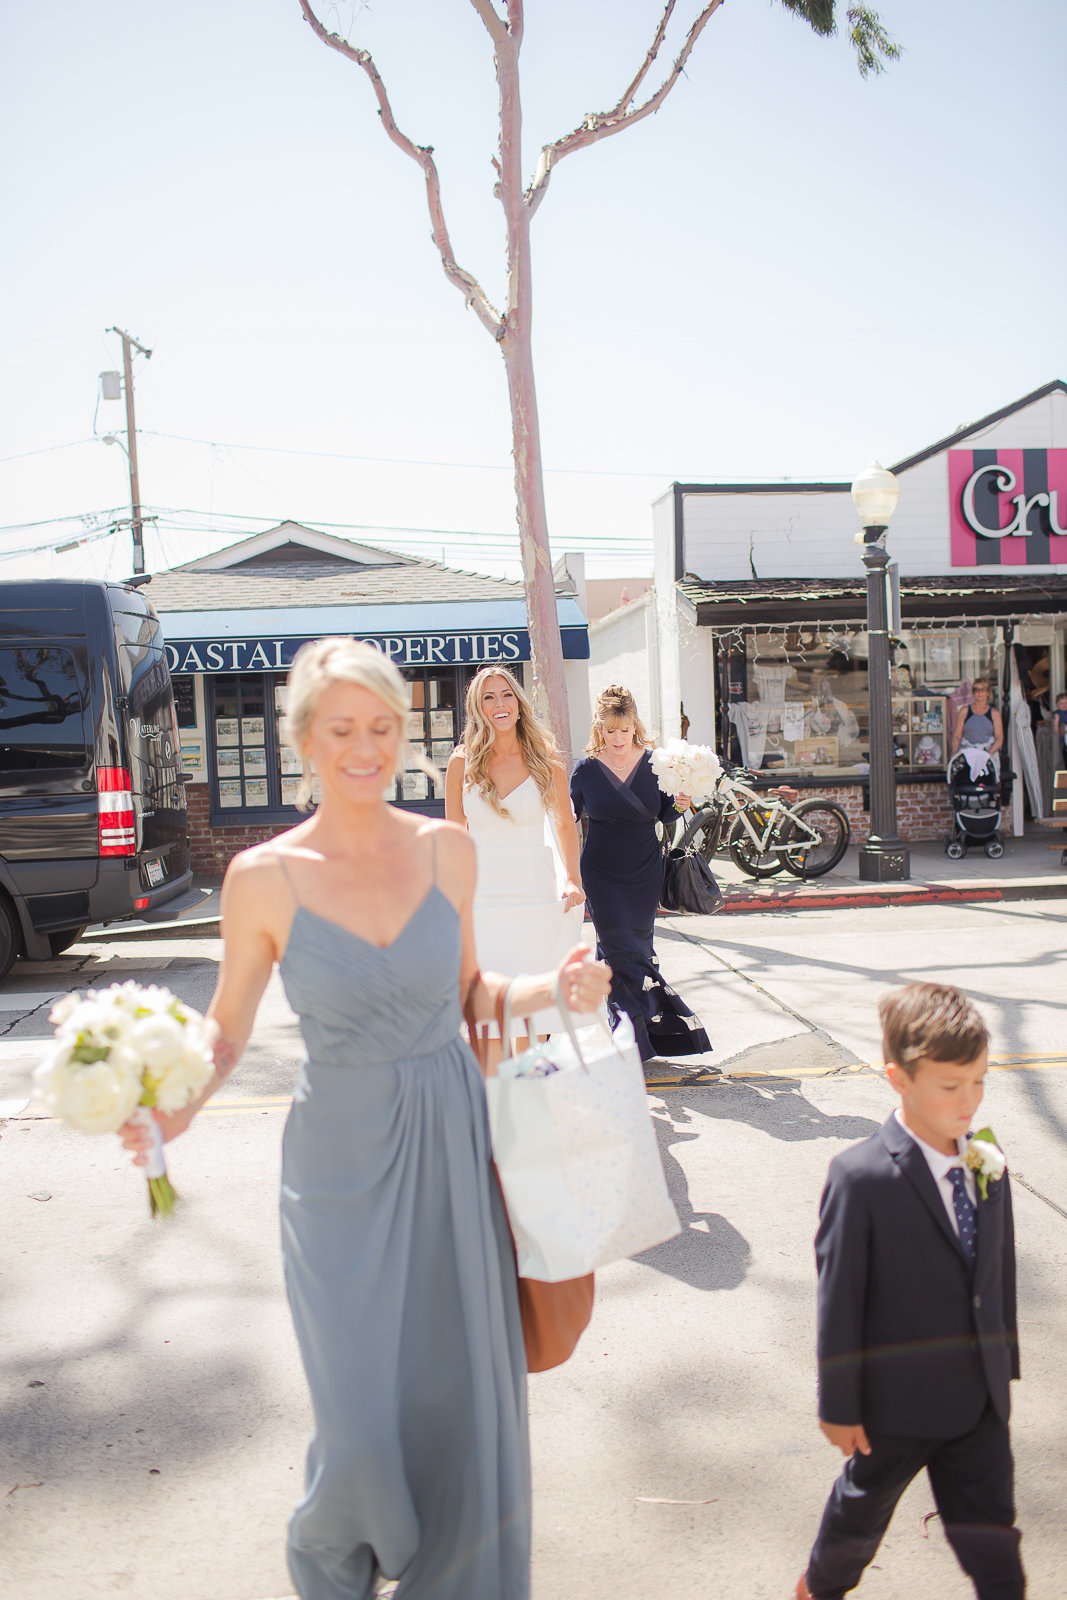 Newport Beach Caliornia Destination Wedding Theresa Bridget Photography-1-2